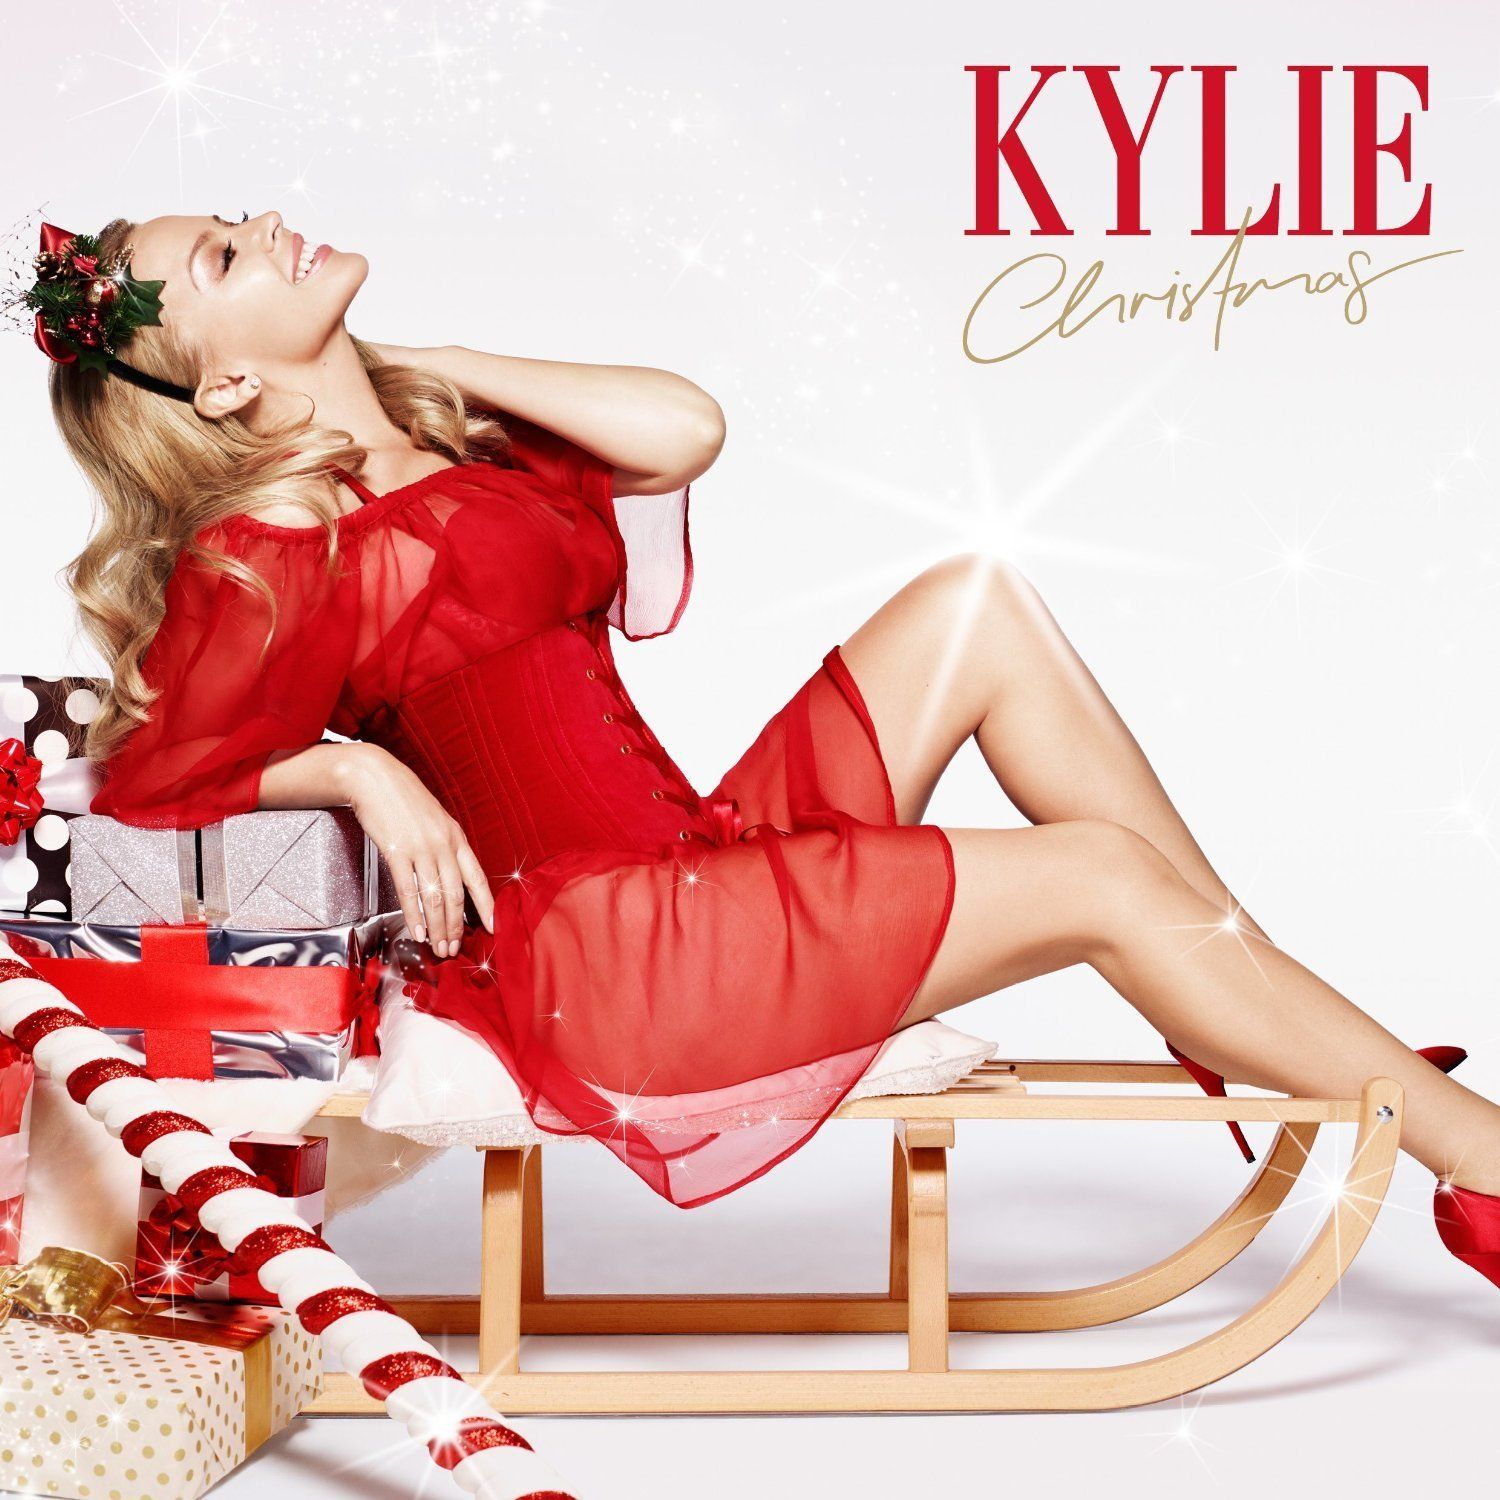 Kylie Minogue - Kylie Christmas album cover